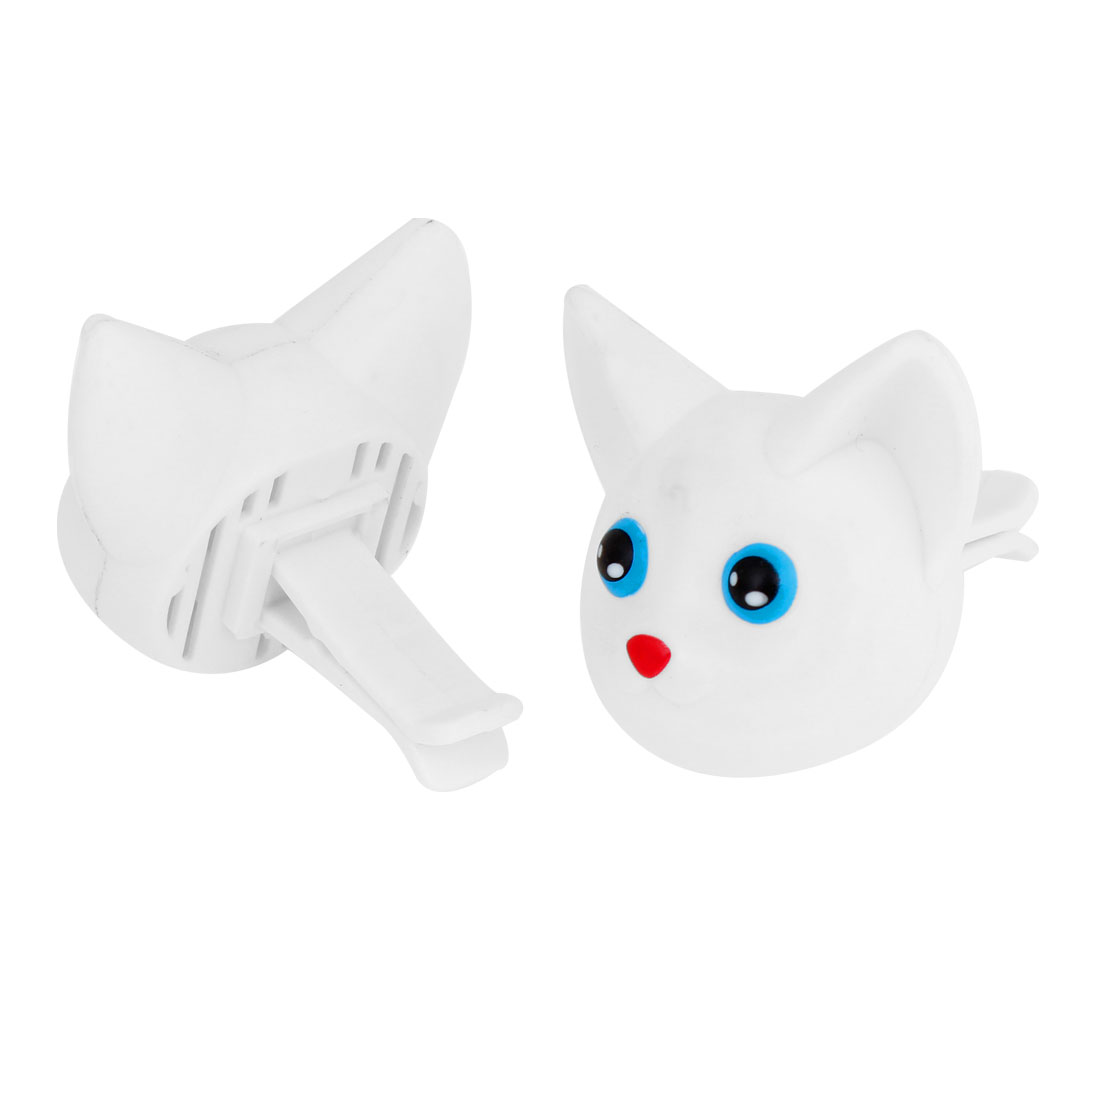 2 x Cat Shaped Plastic Air Fragrance Freshener Case White + Clips for Auto